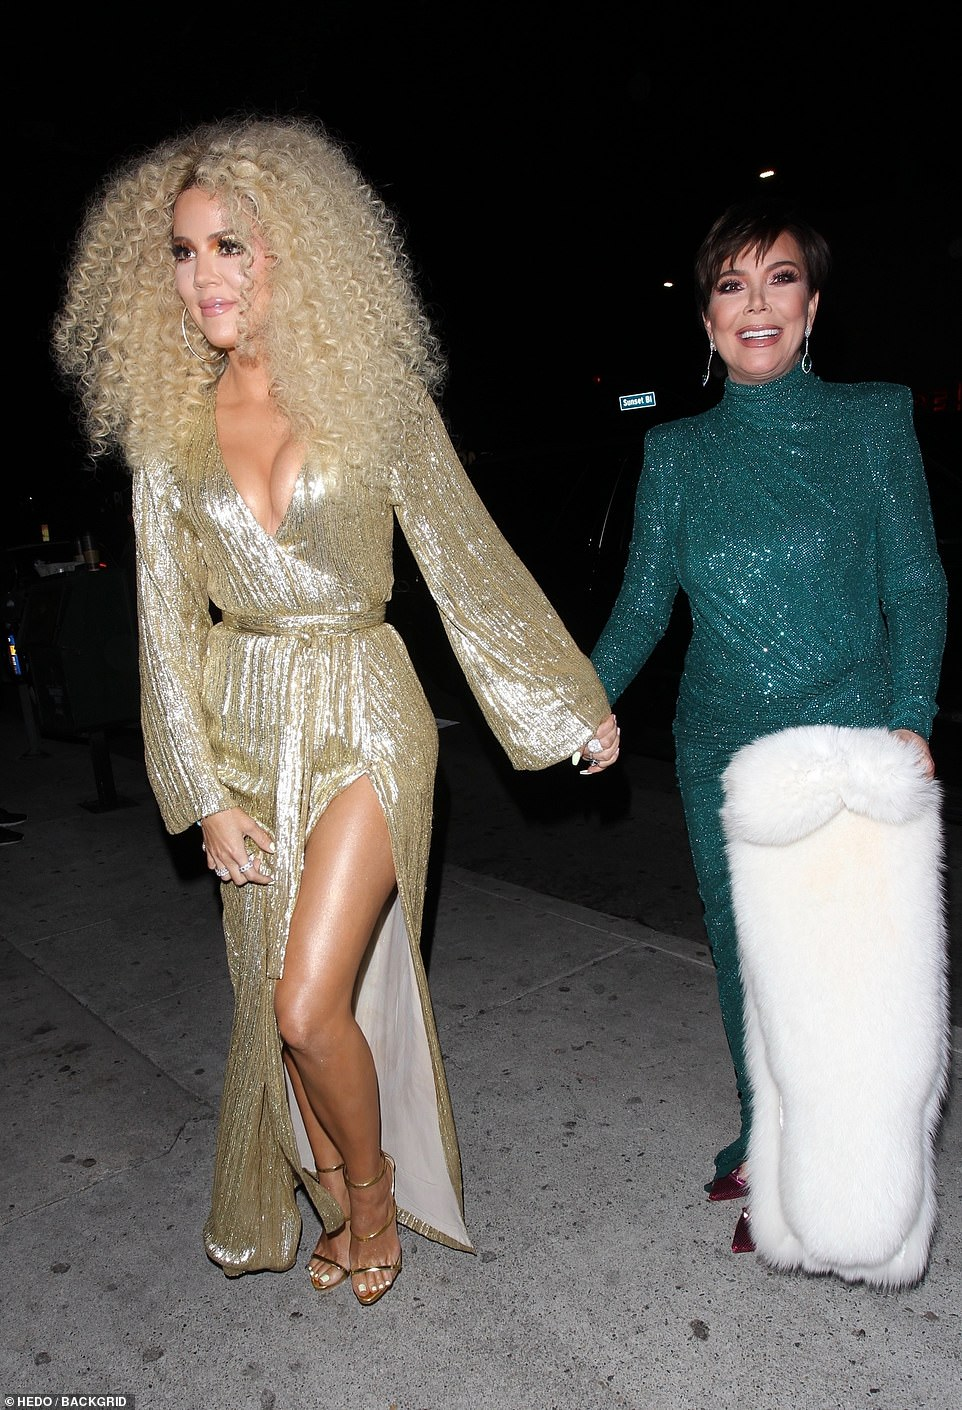 Ready to party: Khloe arrived at the bash hand in hand with her ultra glam mother Kris Jenner, 63, who wowed in green